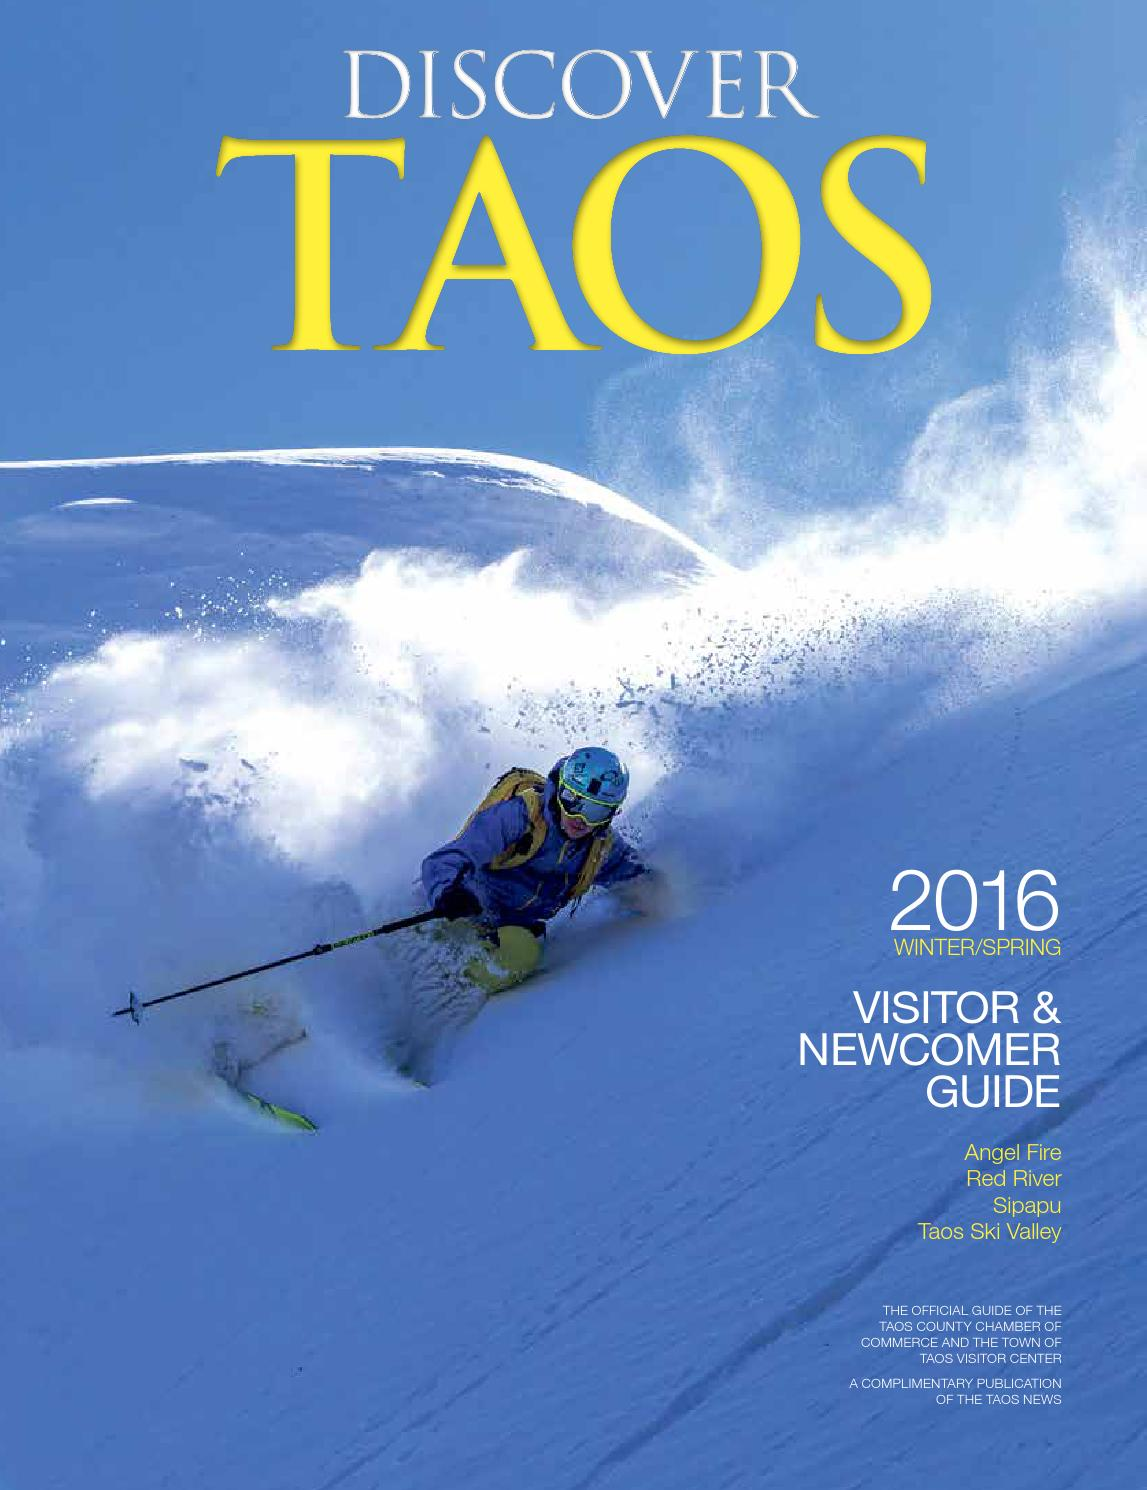 d93b281c100d Winter Visitor Guide 2016 by The Taos News - issuu